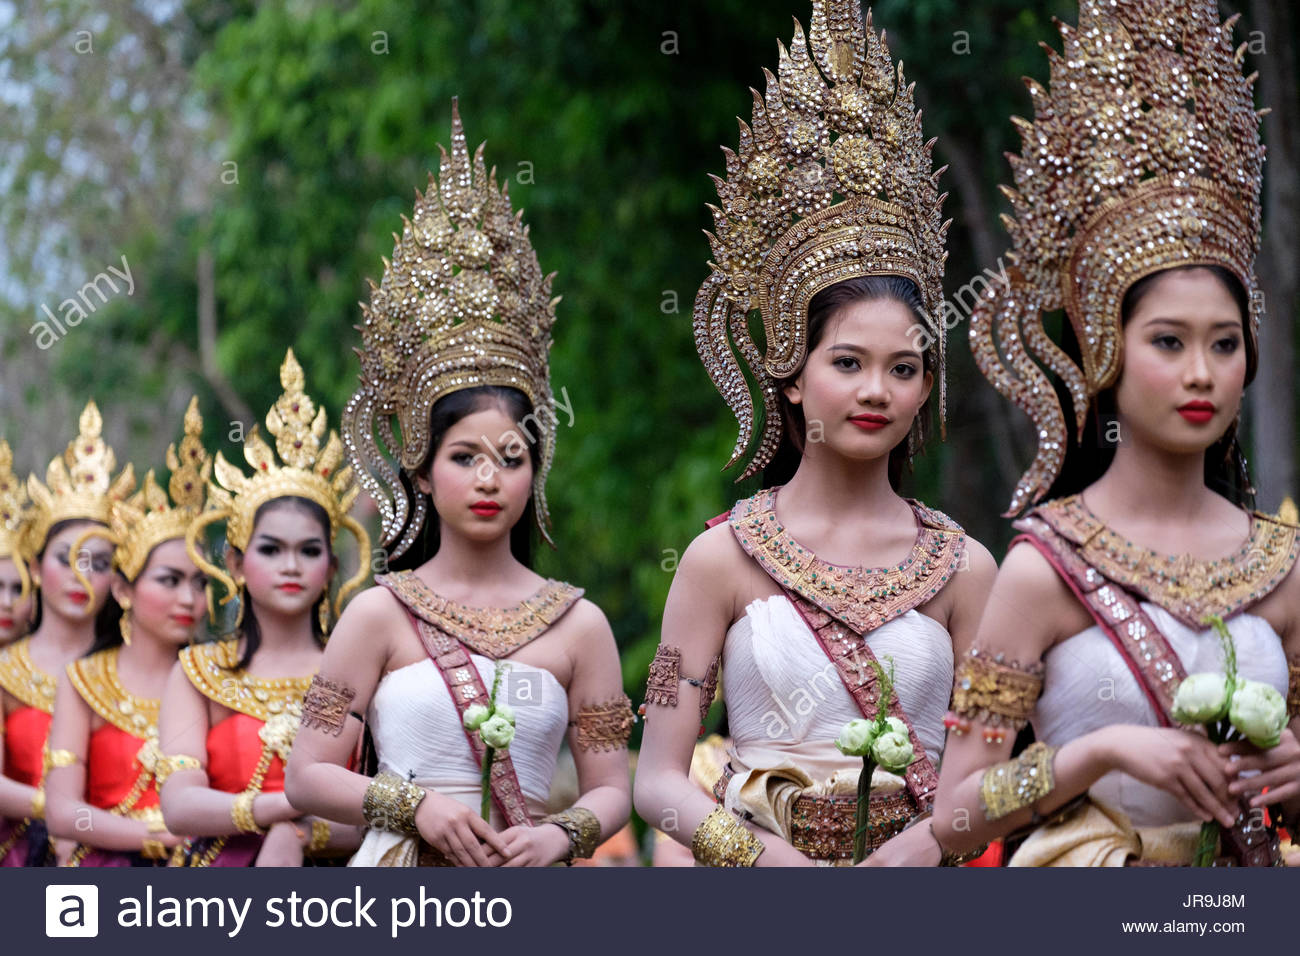 5ff602648 Female Thai dancers dressed in traditional 'apsara' costumes at the main  ceremony of Phanom Rung Festival 2017, Phanom Rung Historical Park, Thailand .